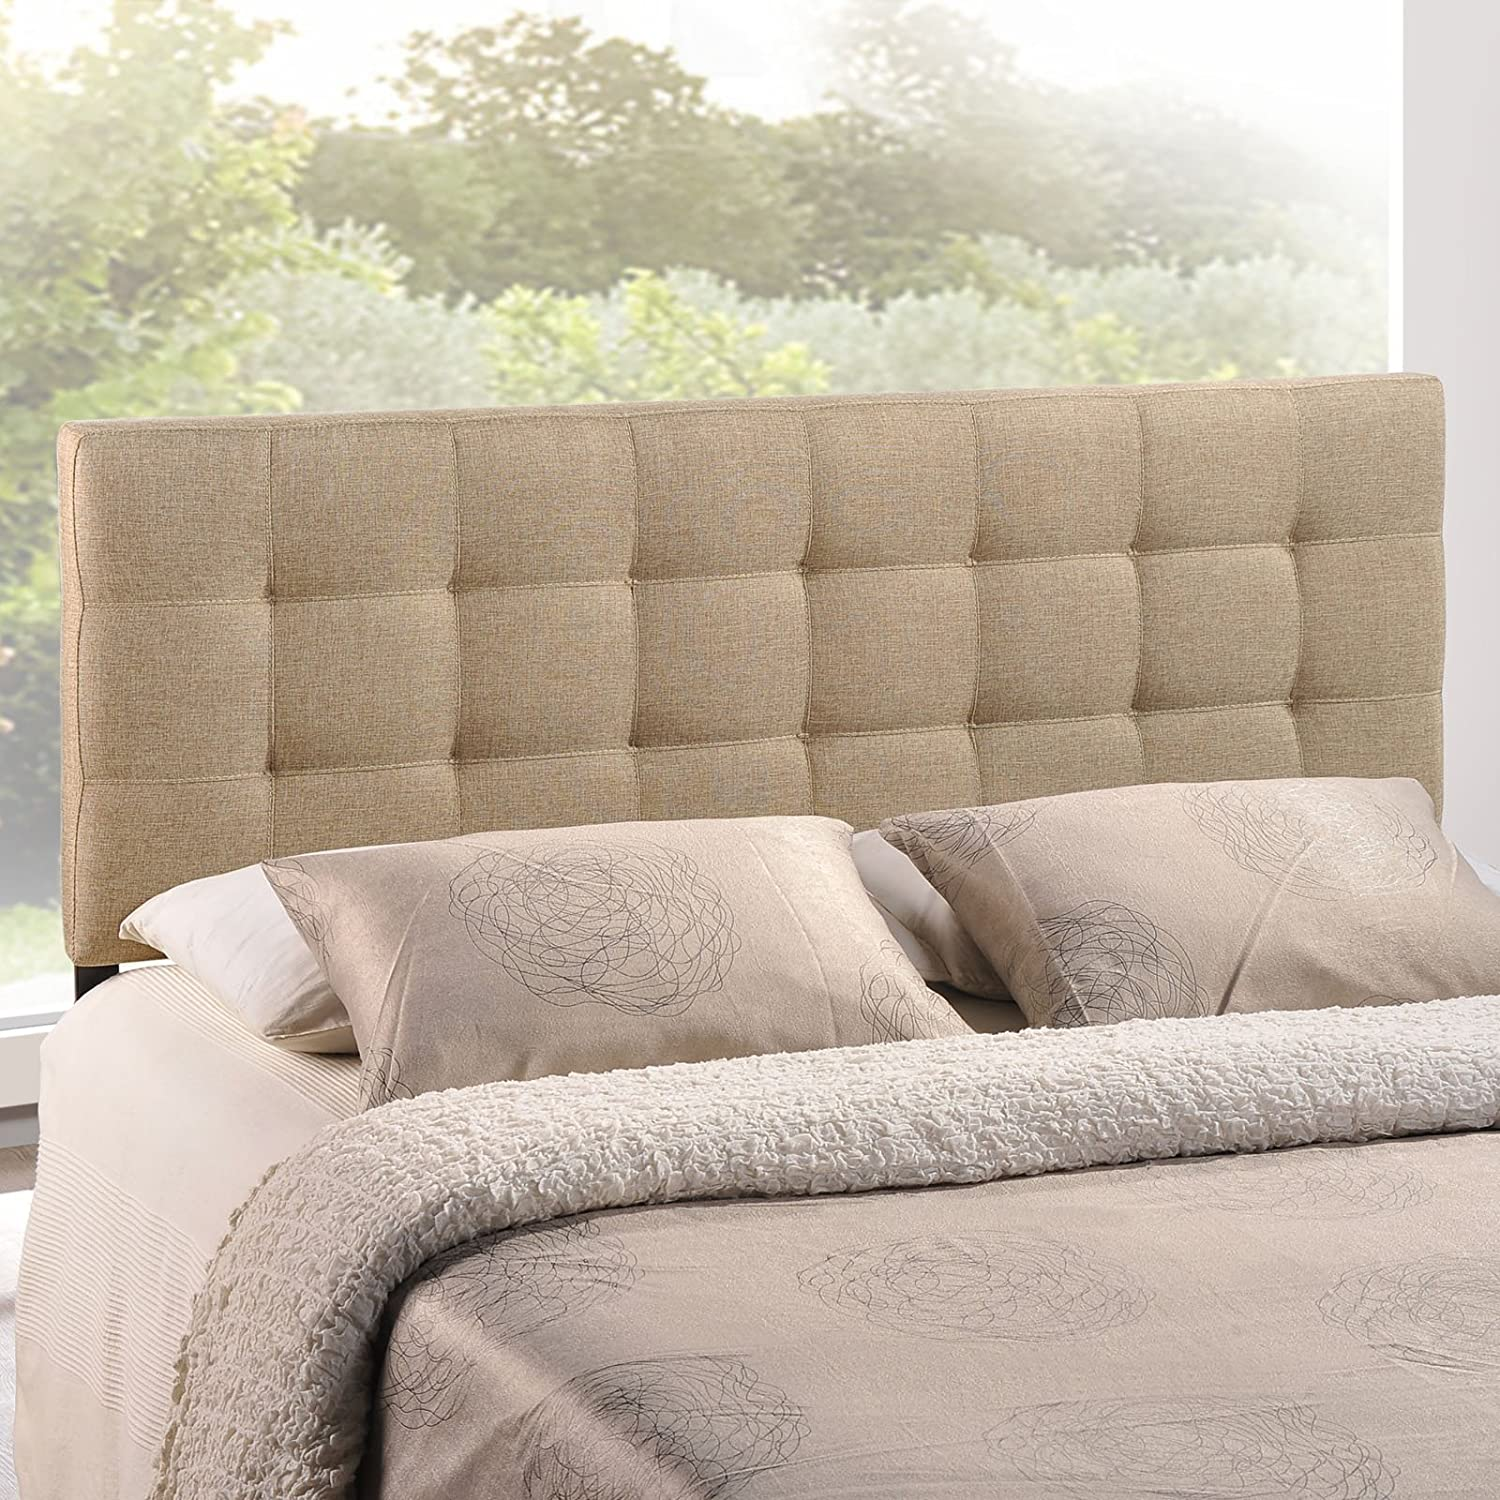 Amazon.com - Modway Lily Upholstered Tufted Fabric Headboard King Size In  Beige - - Amazon.com - Modway Lily Upholstered Tufted Fabric Headboard King